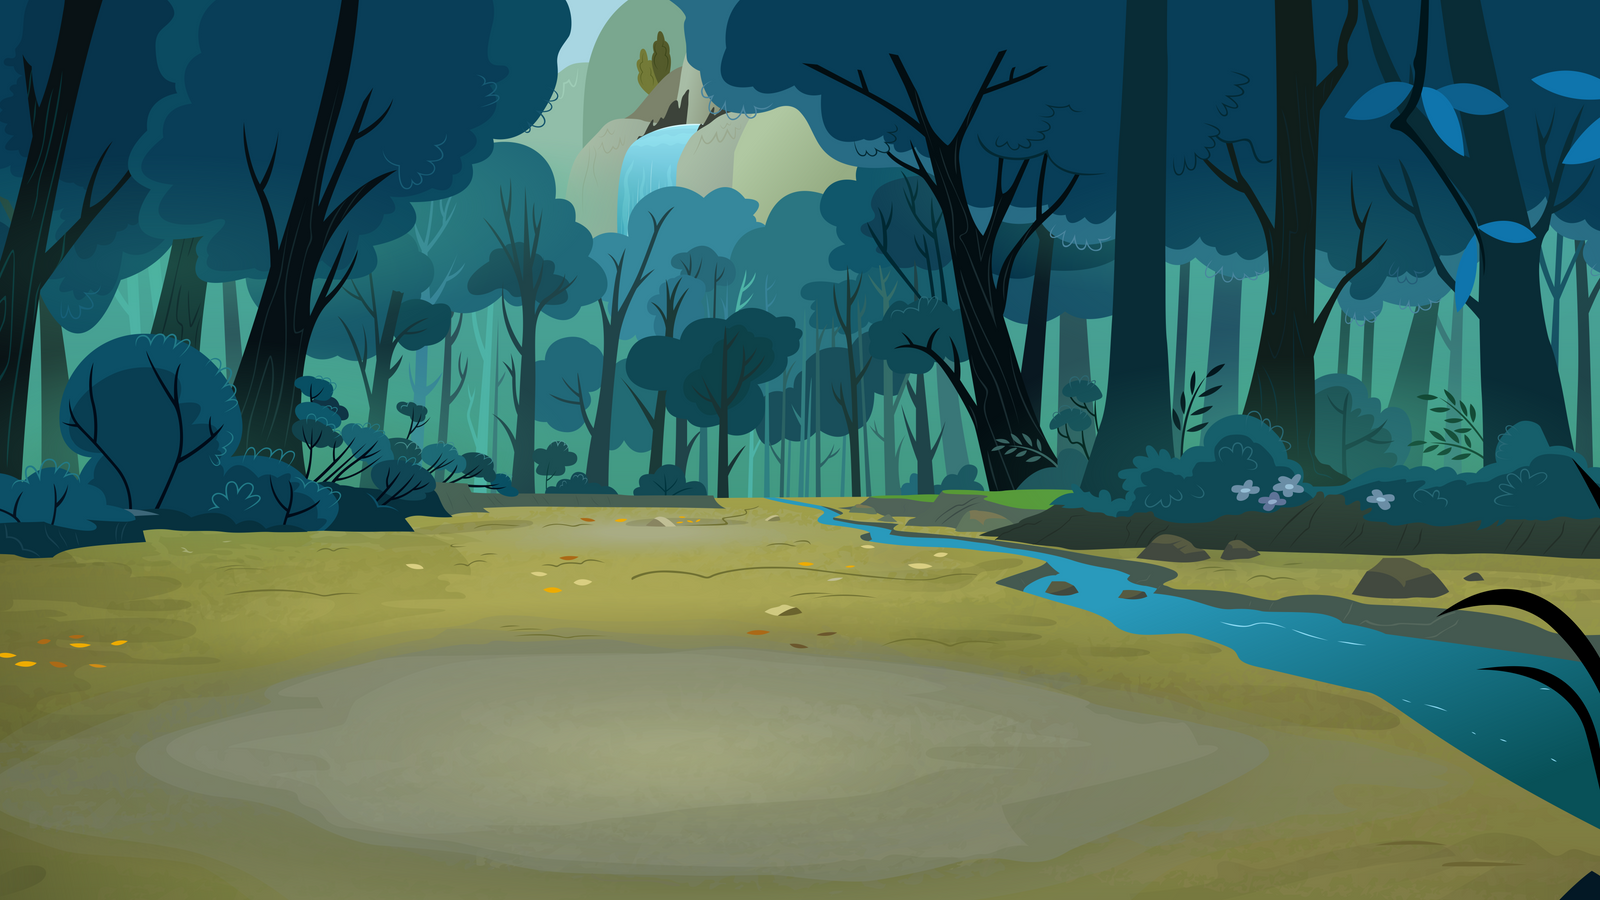 Campsite Background By Dipi11 On Deviantart